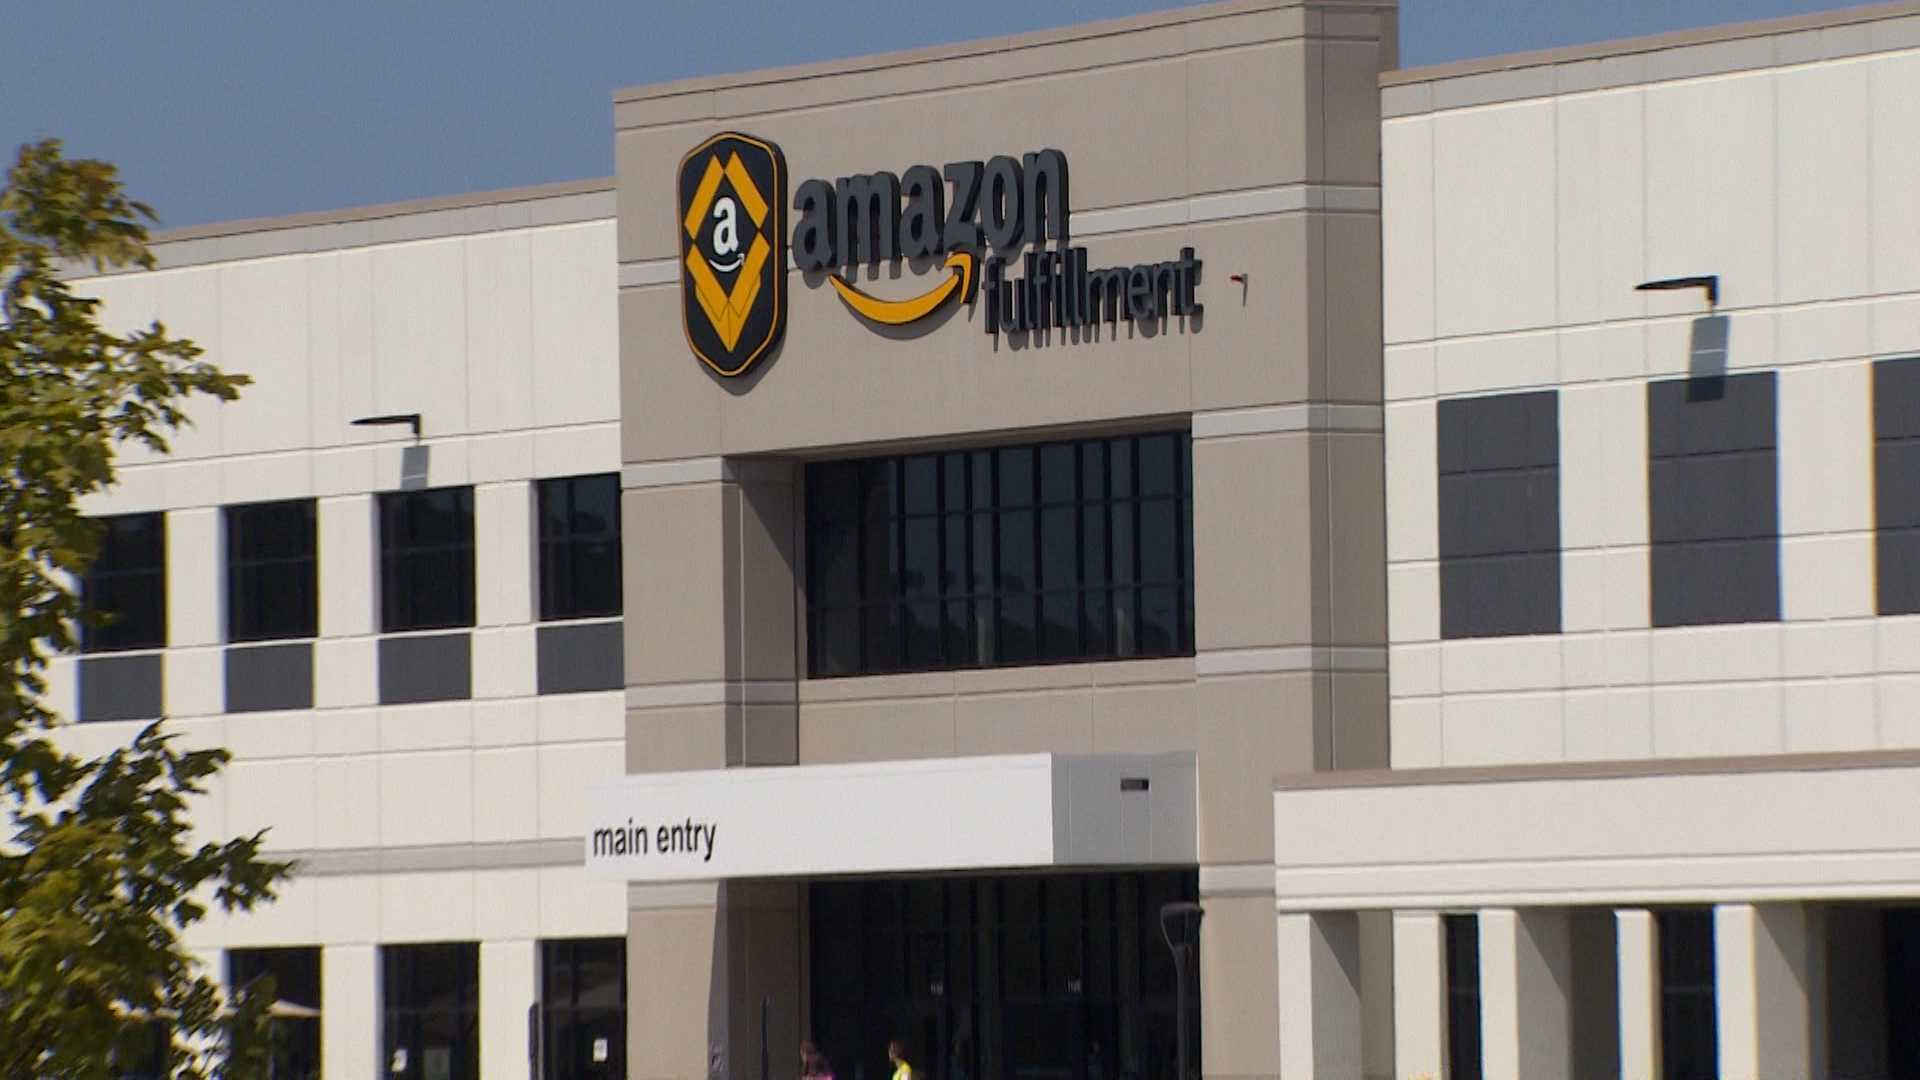 County submits proposal for Amazon's new location